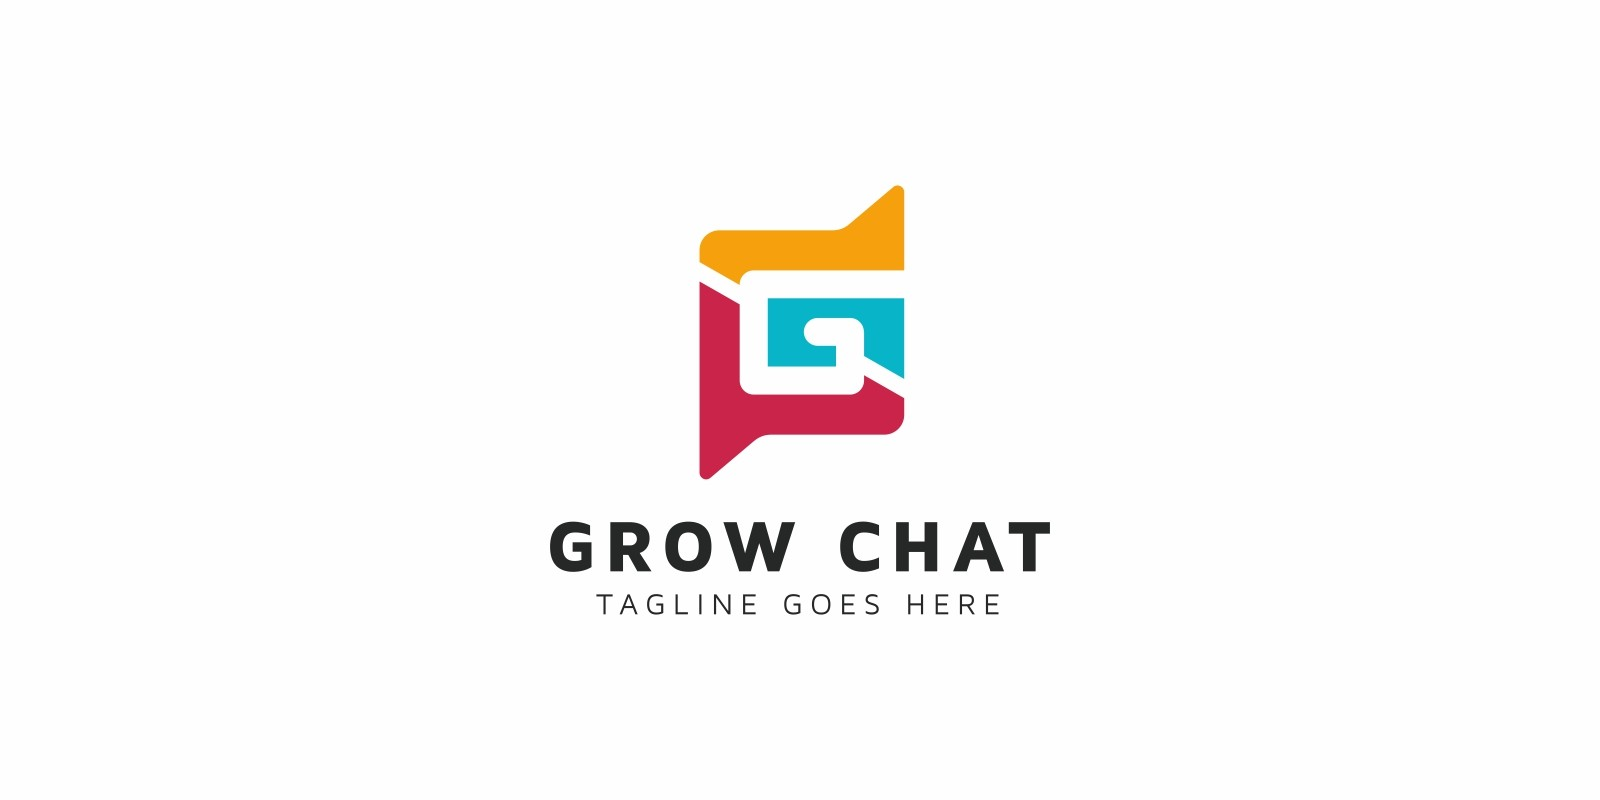 Grow Chat G Letter Logo